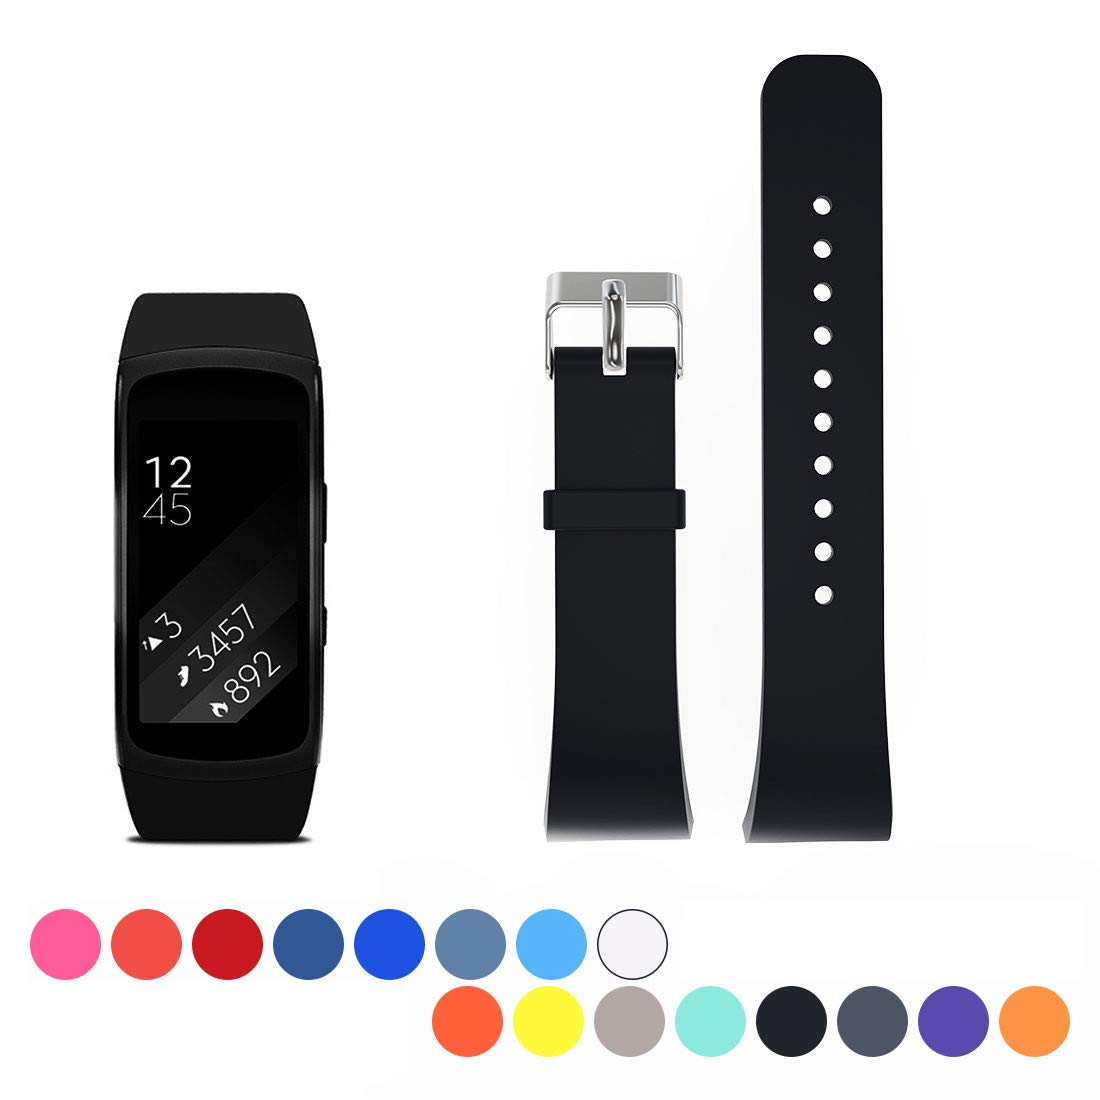 Cyeeson For Samsung Gear Fit 2 SM-R360 Replacement Watch Band, Soft  Silicone Wristband Strap Smartwatch Bracelet Band for Samsung Gear Fit 2  SM-R360